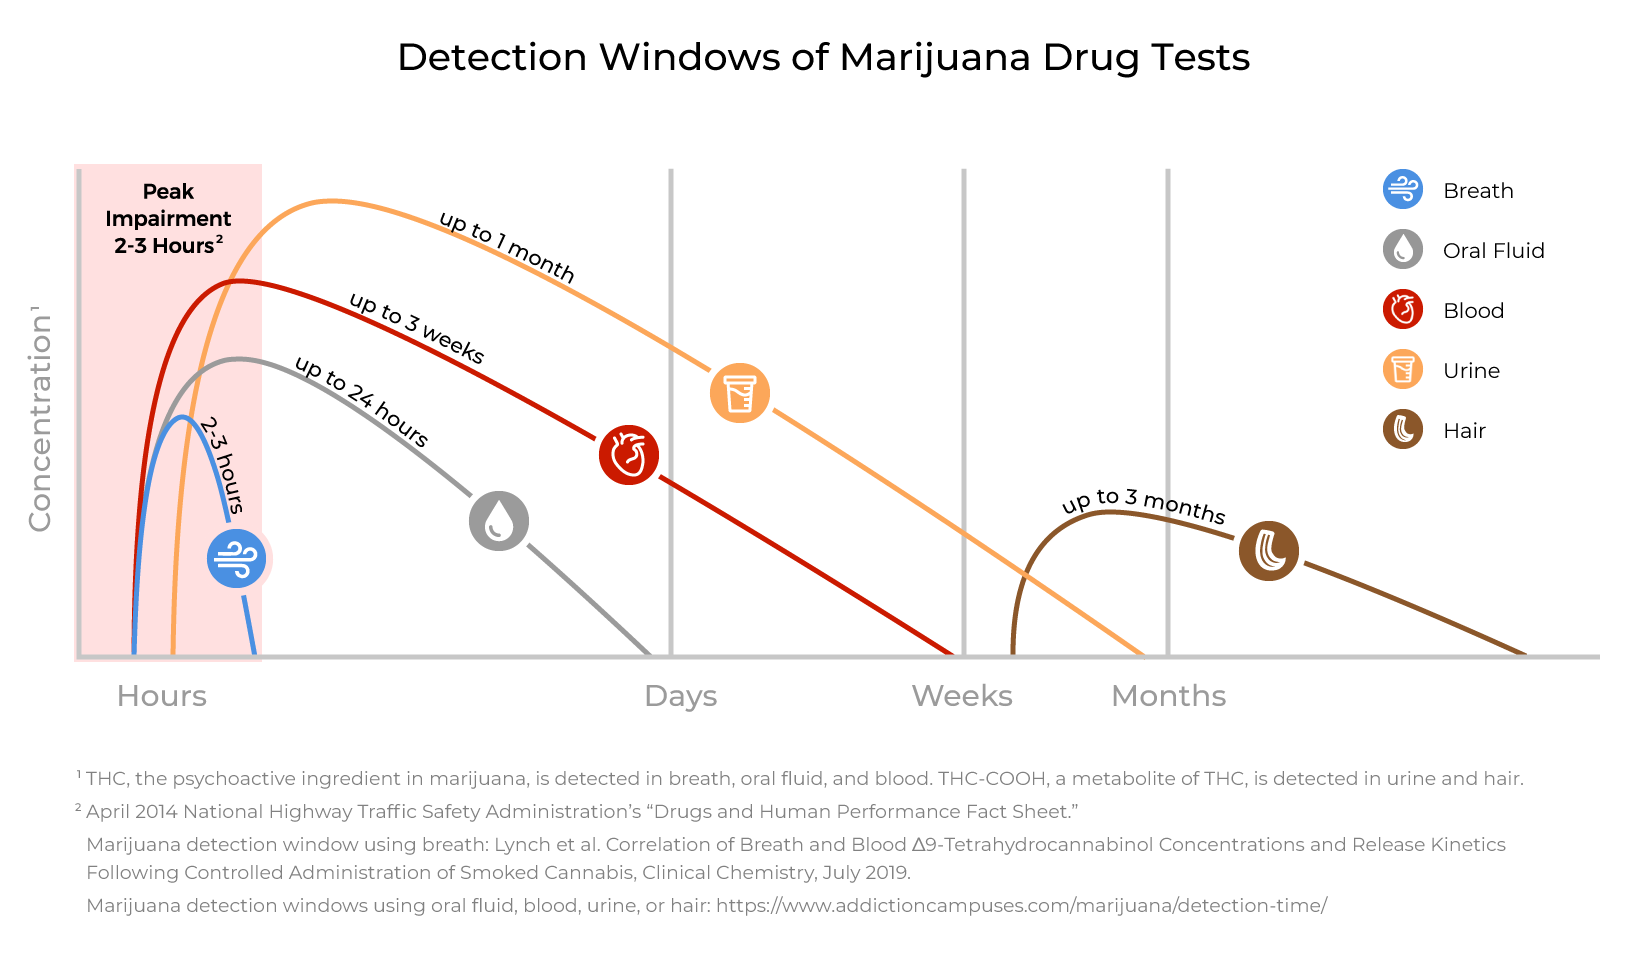 How-long-can-marijuana-be-detected-in-drug-tests_-Hound-Labs-10-8-19_WhiteBG